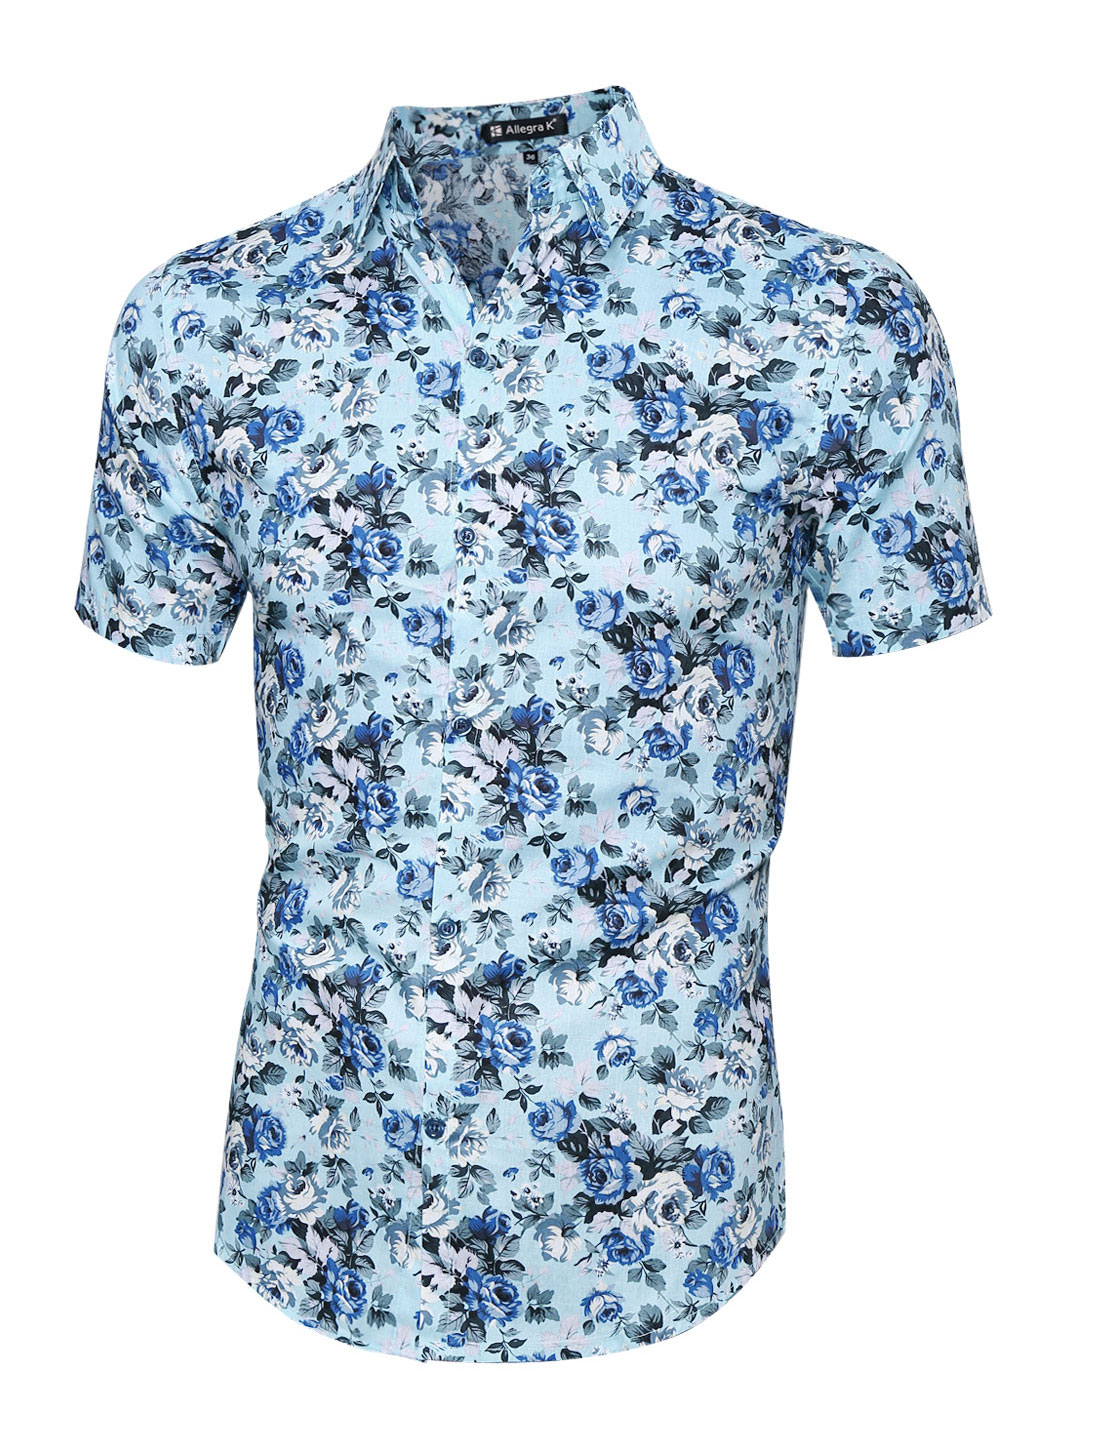 Men Allover Floral Prints Short Sleeves Casual Shirt Light Blue S